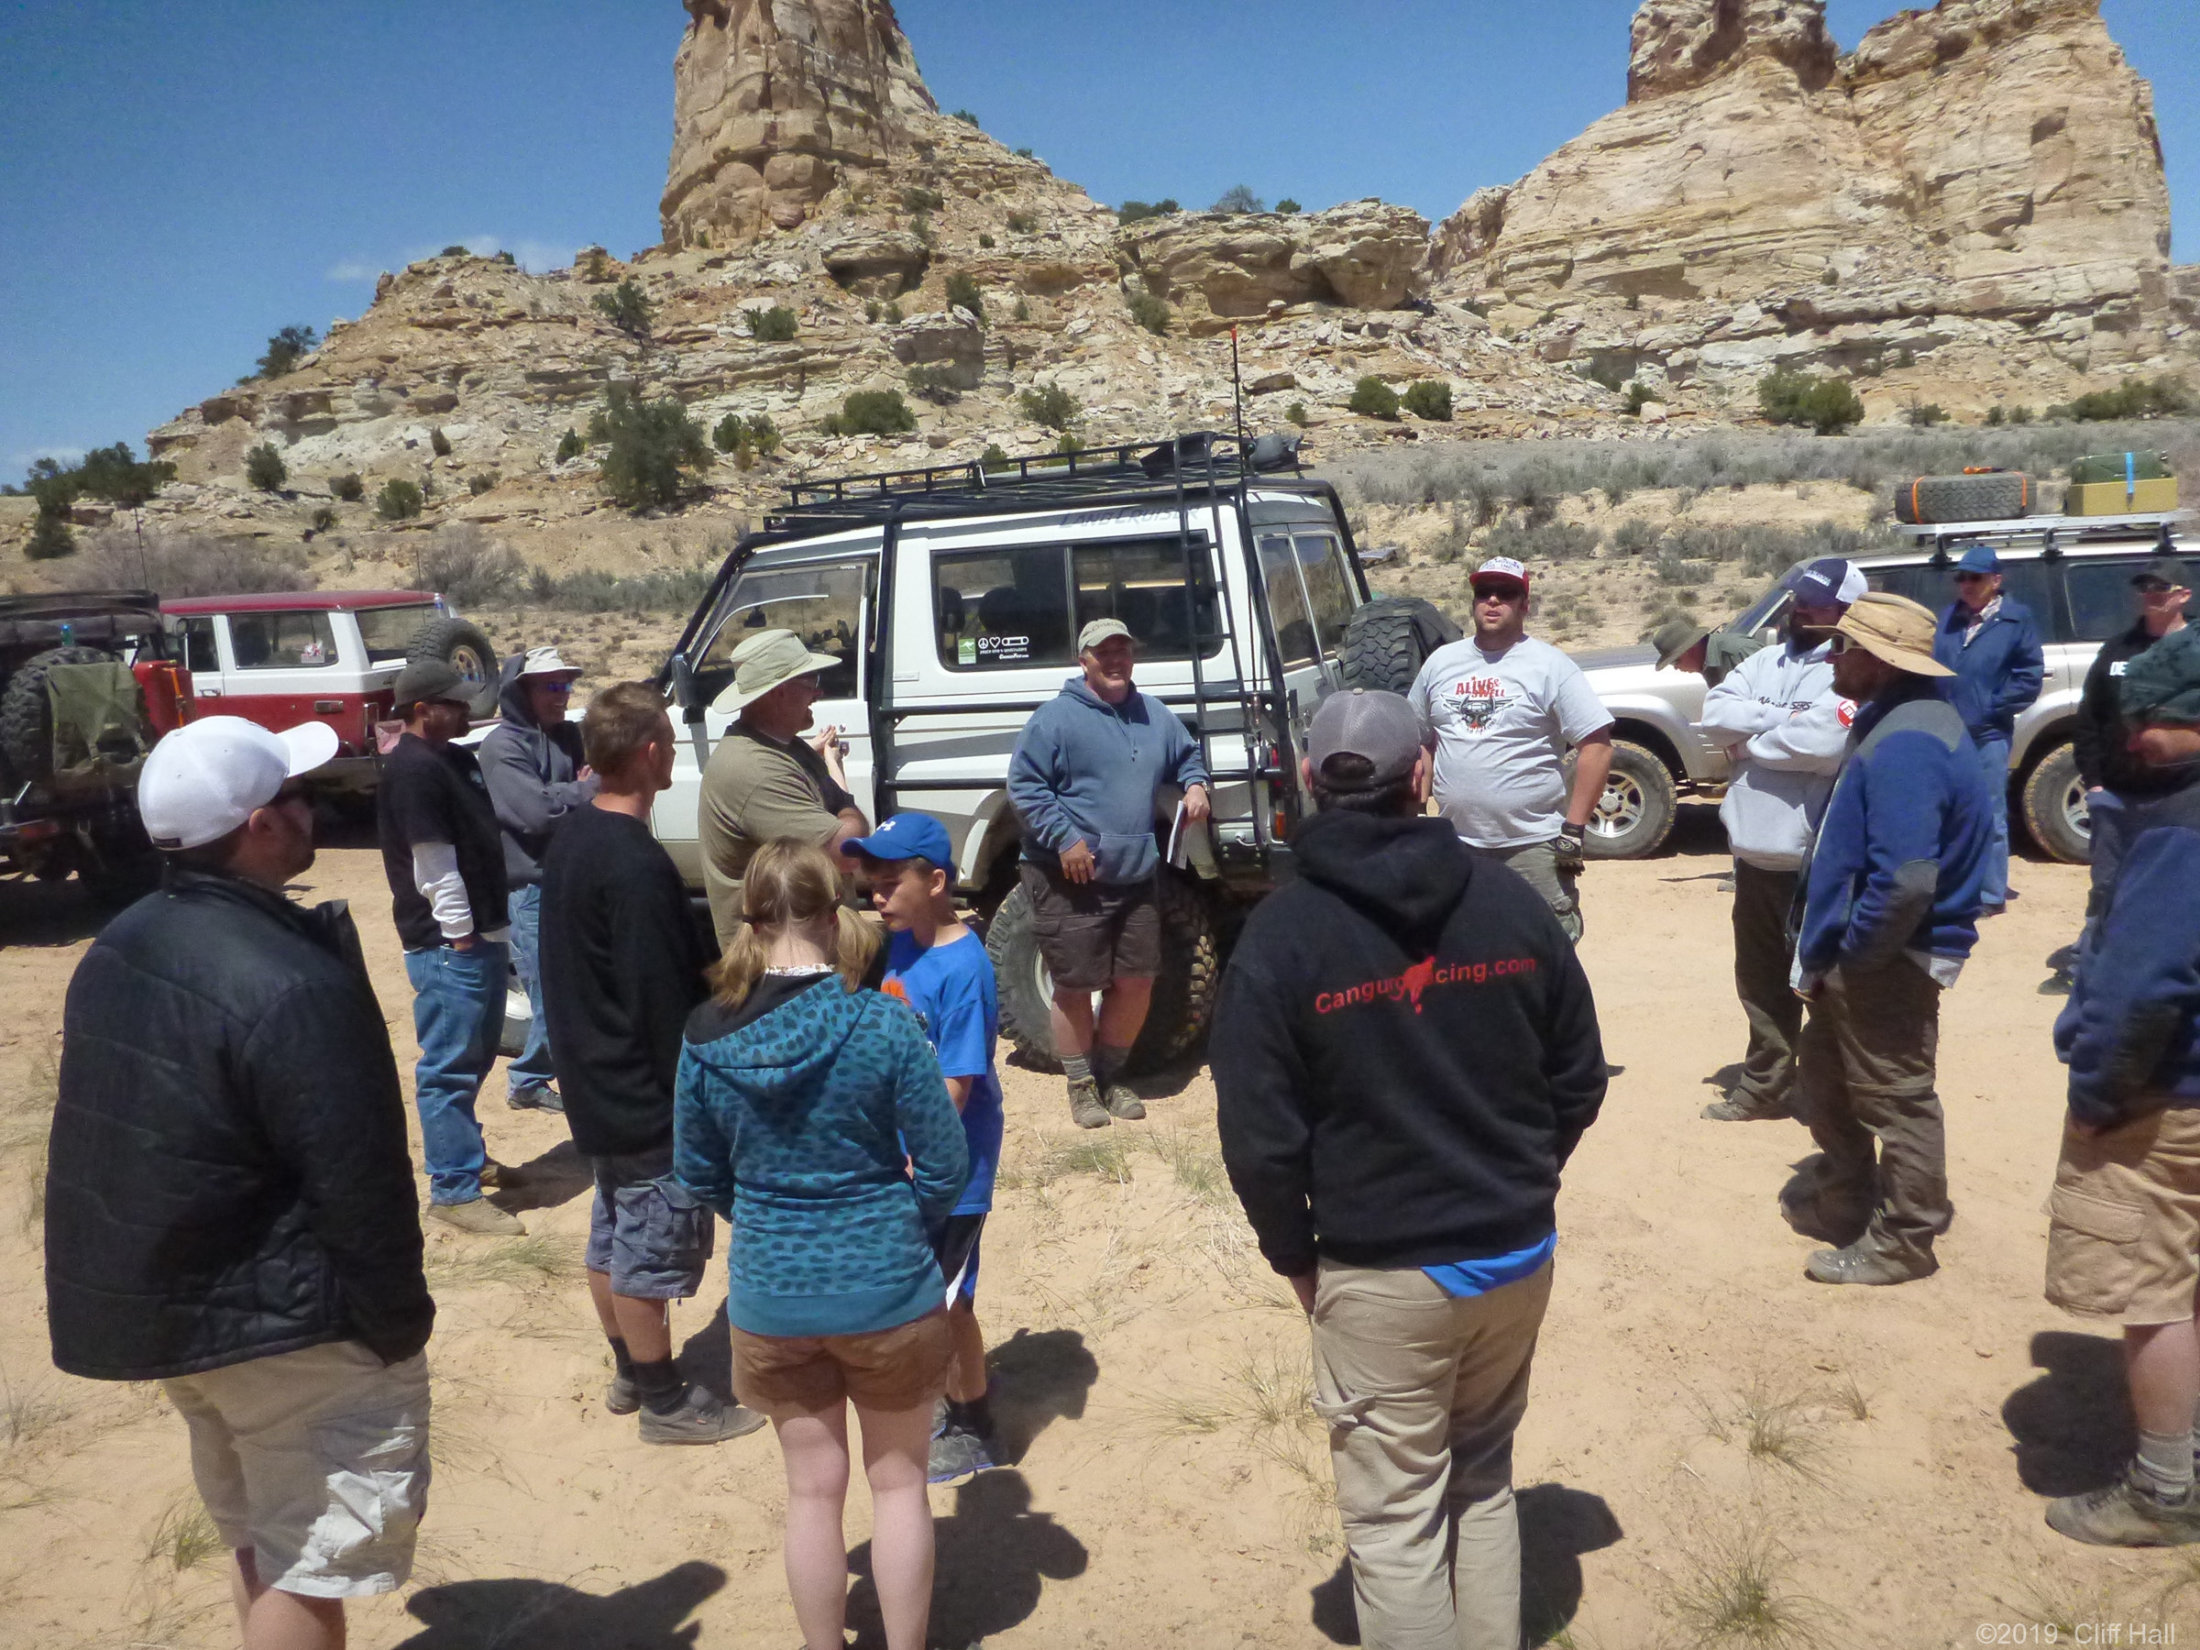 San Rafael Swell Lunch stop